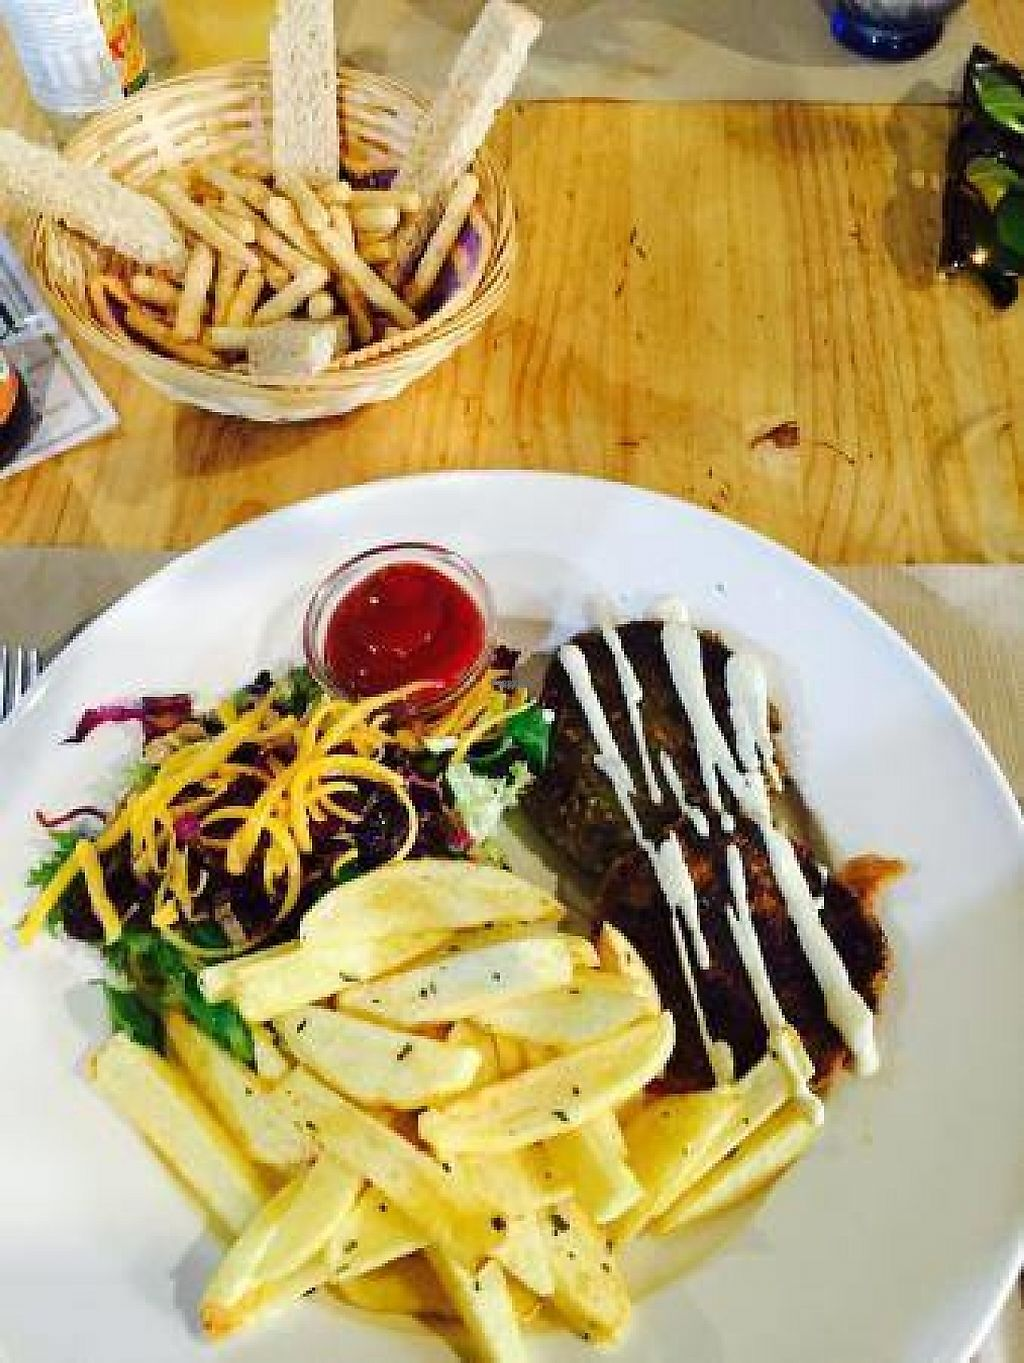 """Photo of Bar Ecologico Gaia  by <a href=""""/members/profile/CentroEcologicoGaia"""">CentroEcologicoGaia</a> <br/>Home made chips and veggie burger can´t taste any better than this!  <br/> November 14, 2016  - <a href='/contact/abuse/image/11338/190047'>Report</a>"""